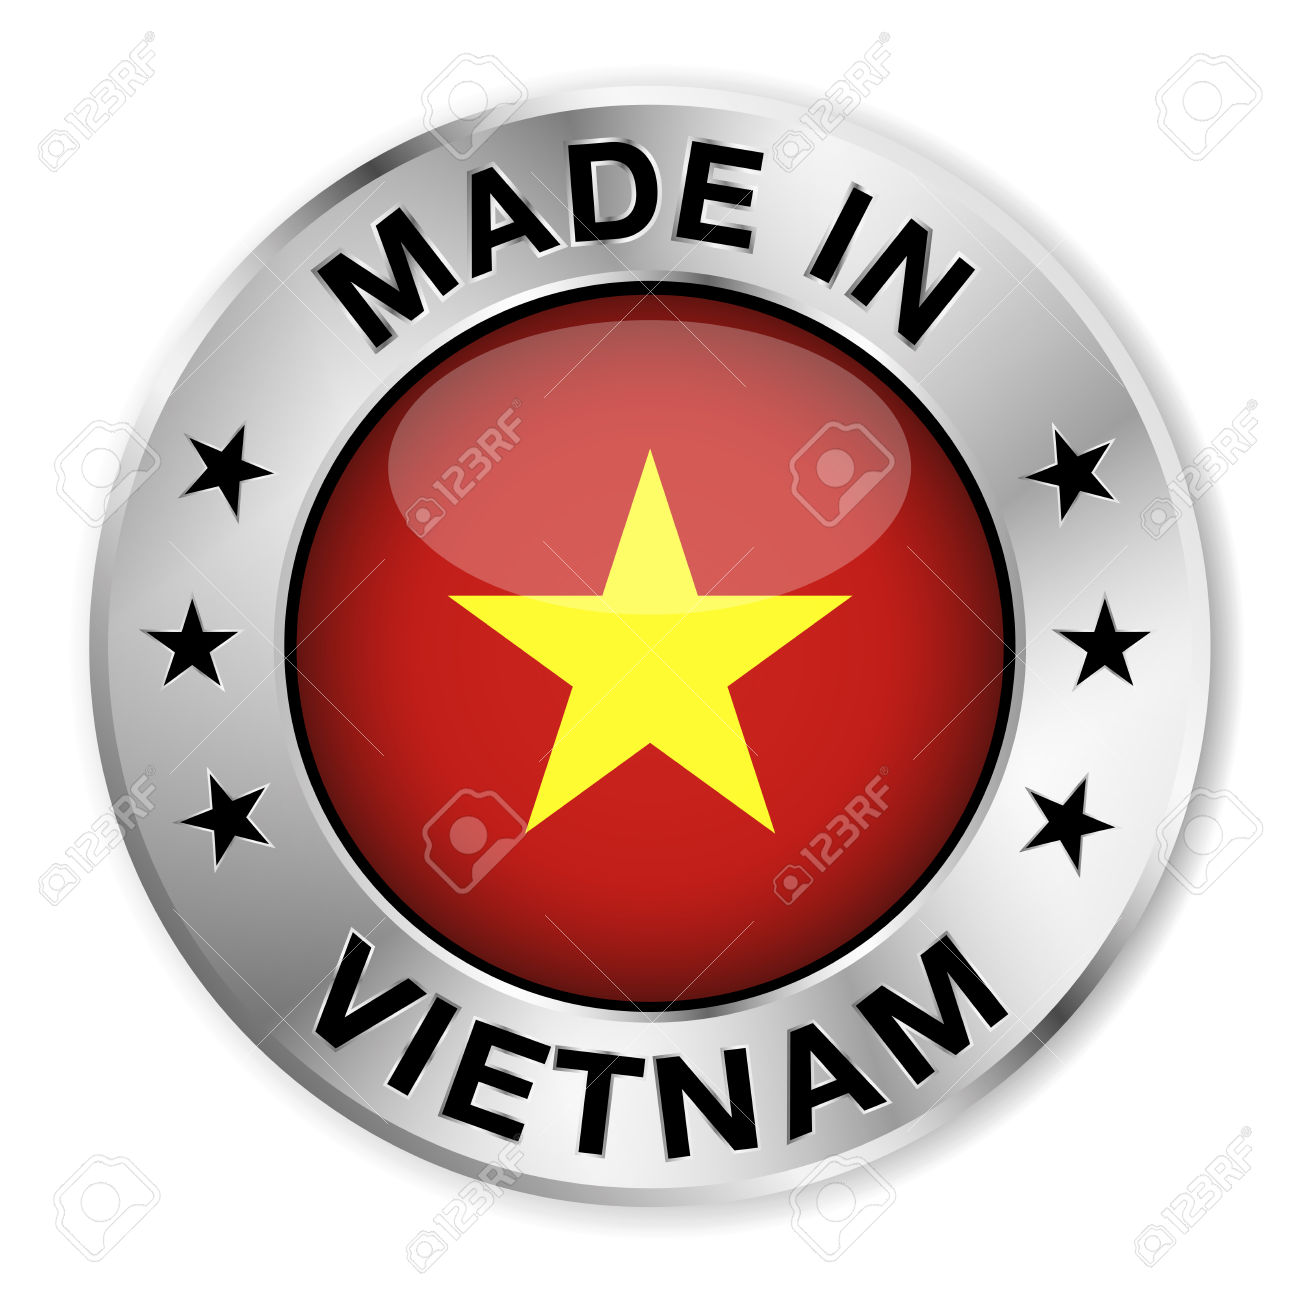 Made In Vietnam Silver Badge And Icon With Central Glossy.